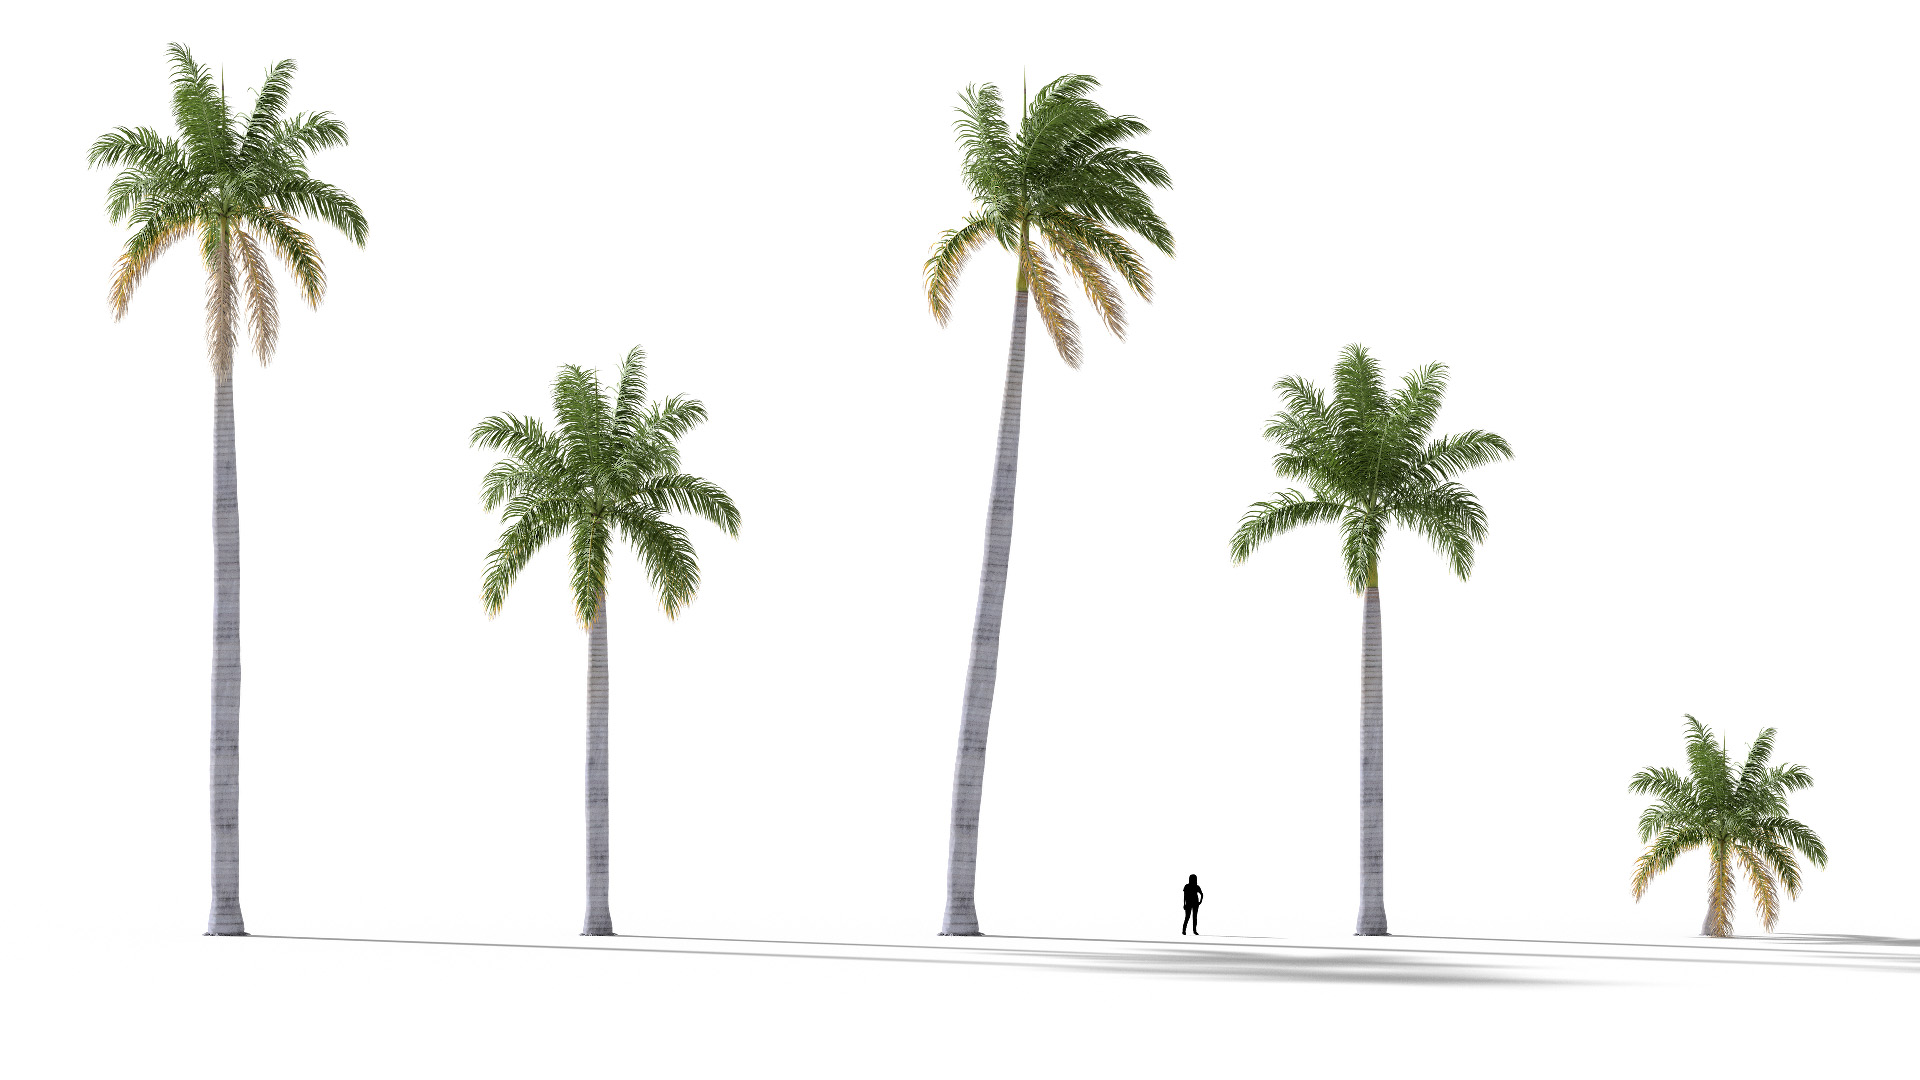 3D model of the Royal palm Roystonea regia different presets